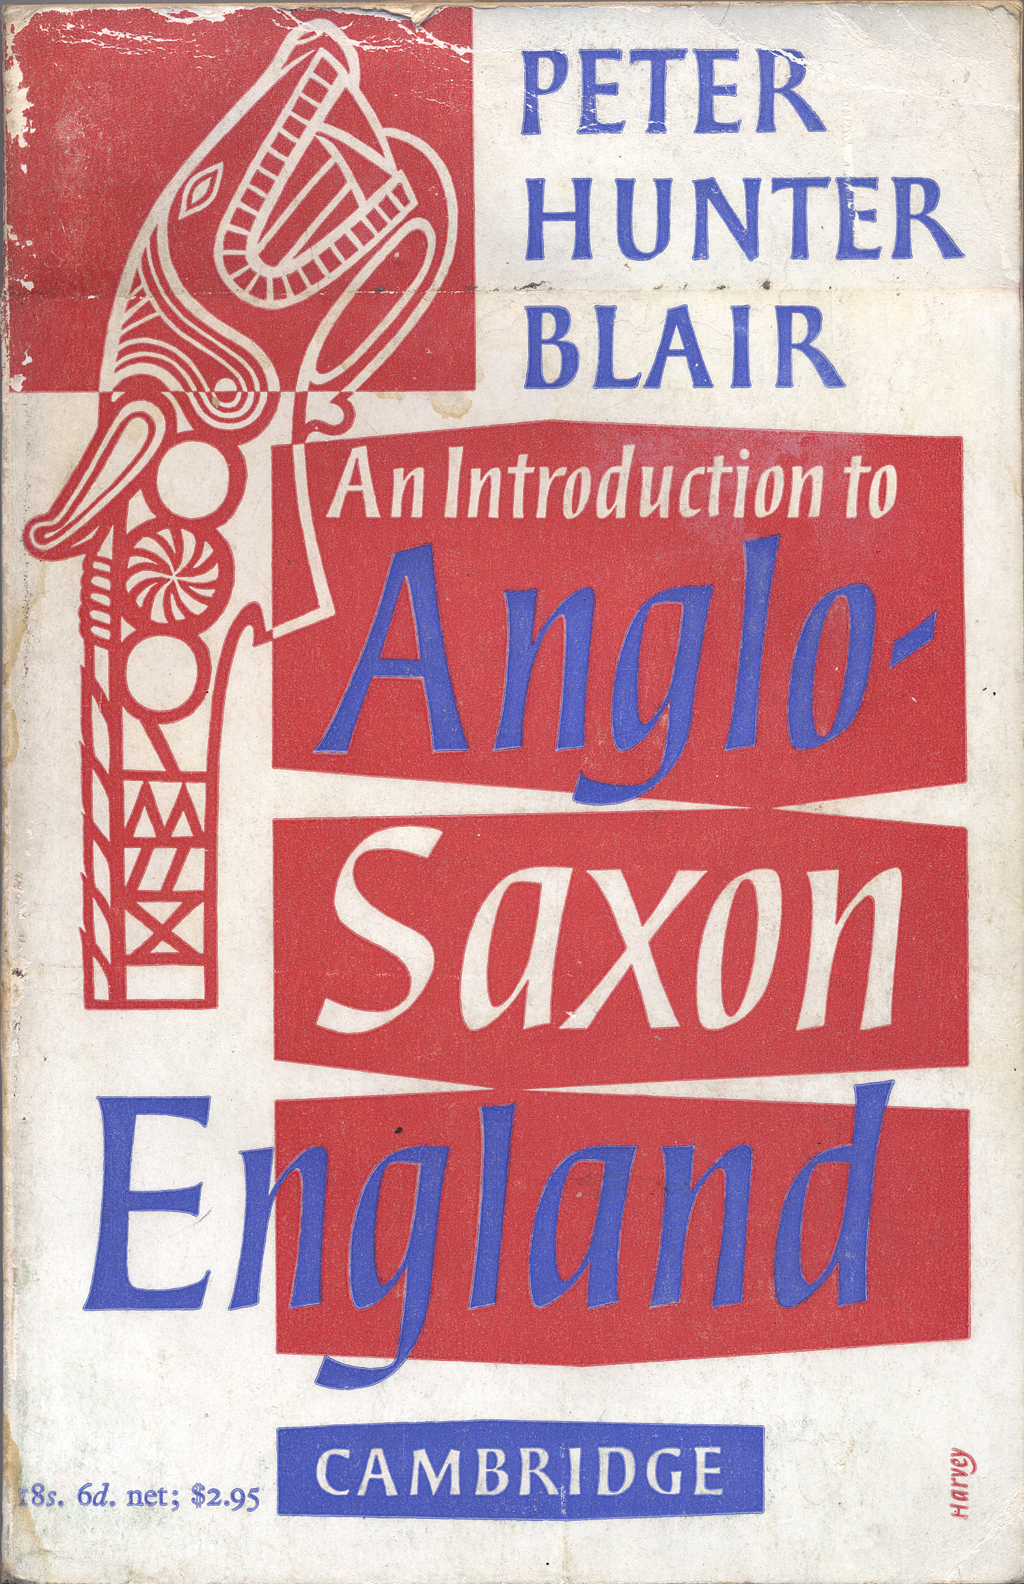 An Introduction to Anglo-Saxon England by Peter Hunter Blair (Cambridge: Cambridge University Press, 1956). Bookjacket design by Michael Harvey.